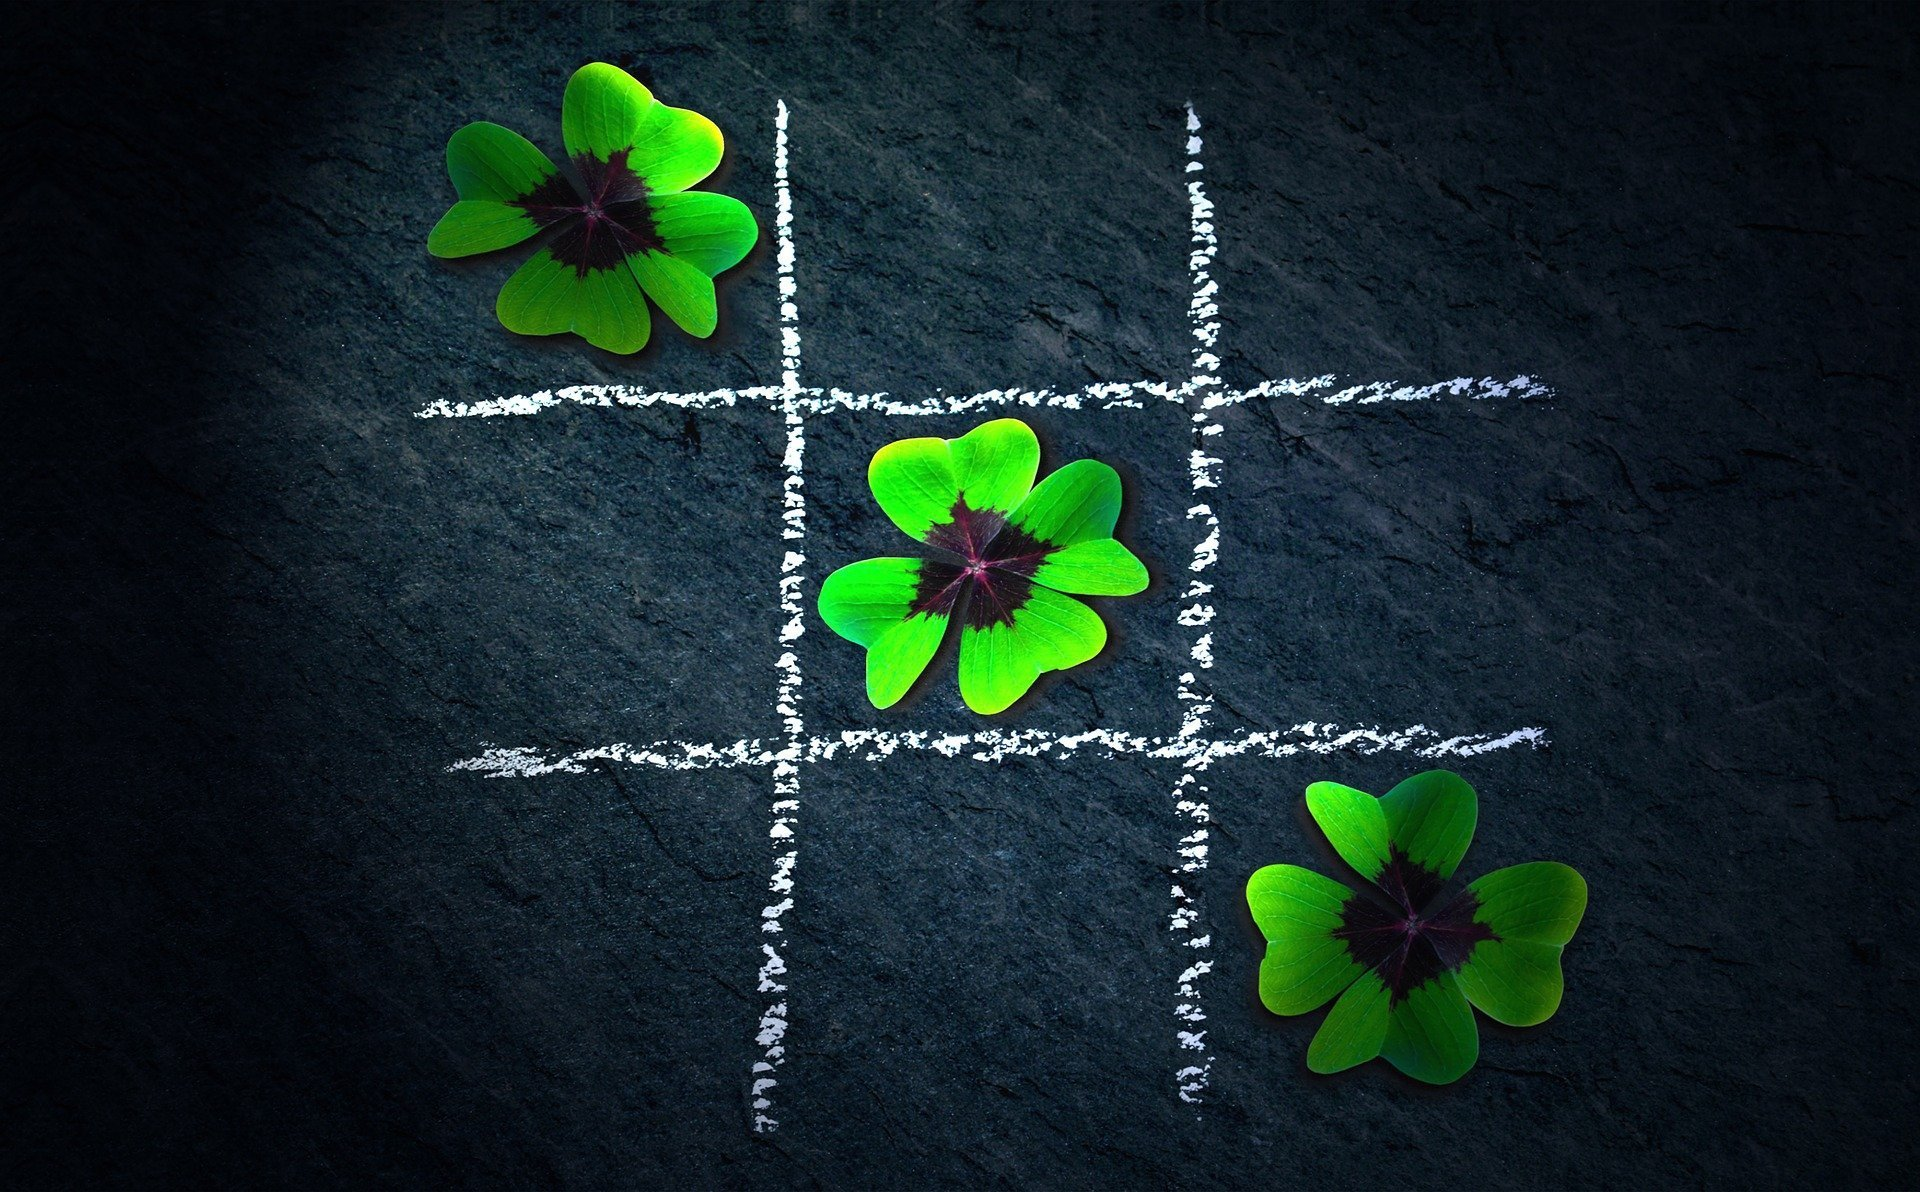 phoot of a black background with tic tac toe in white and three green flowers in a row